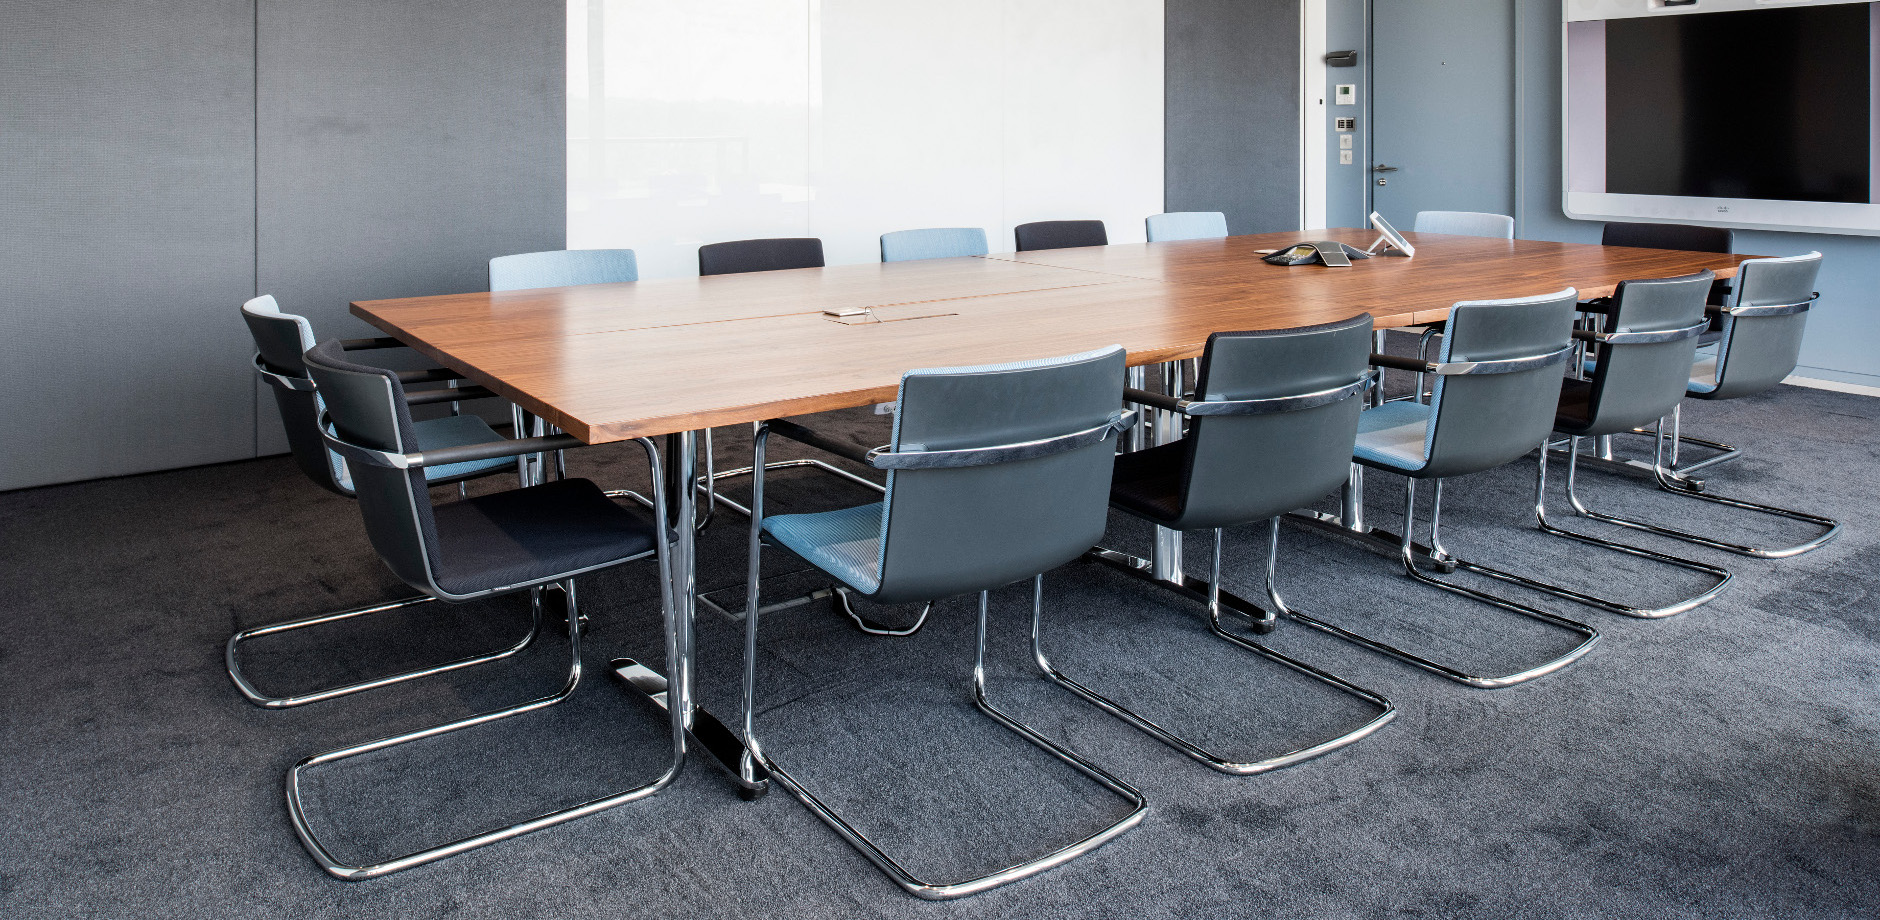 Office Space case study - Maersk Maidenhead - Wilkhahn Neos cantilever chair and Travis conference table